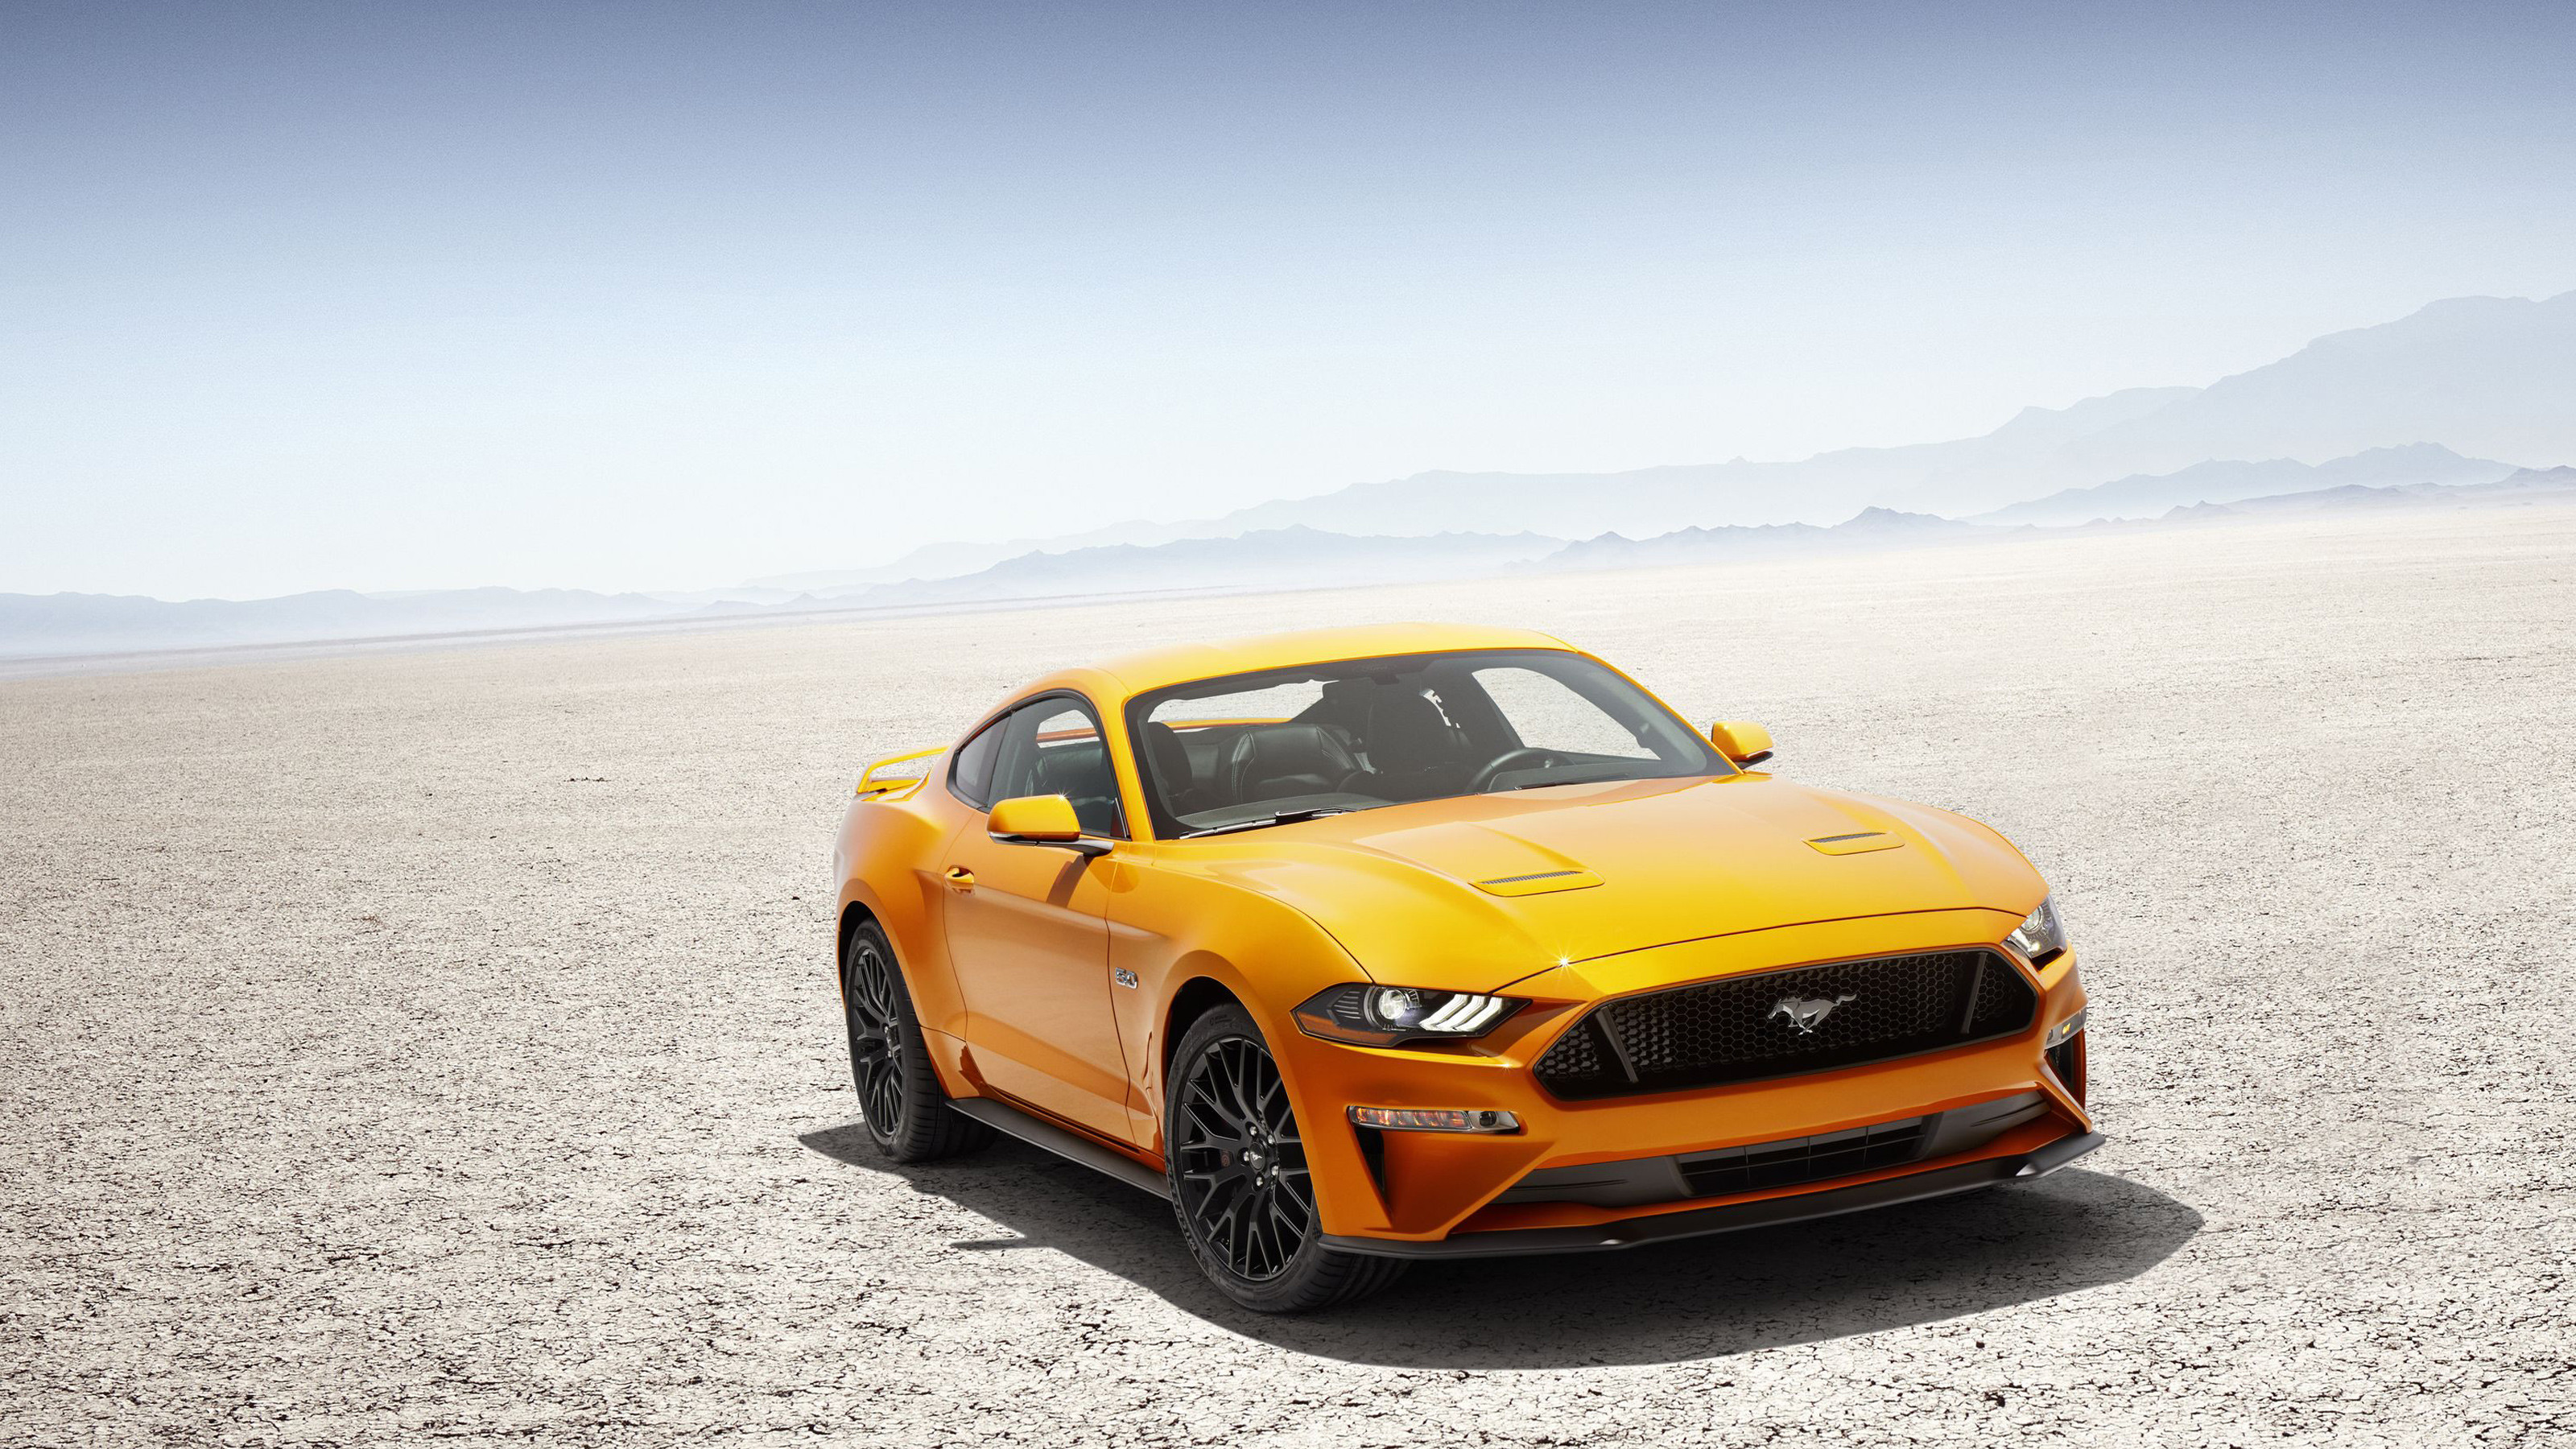 3200x1800 PC.925, Mustang GT, HD Photo Collection